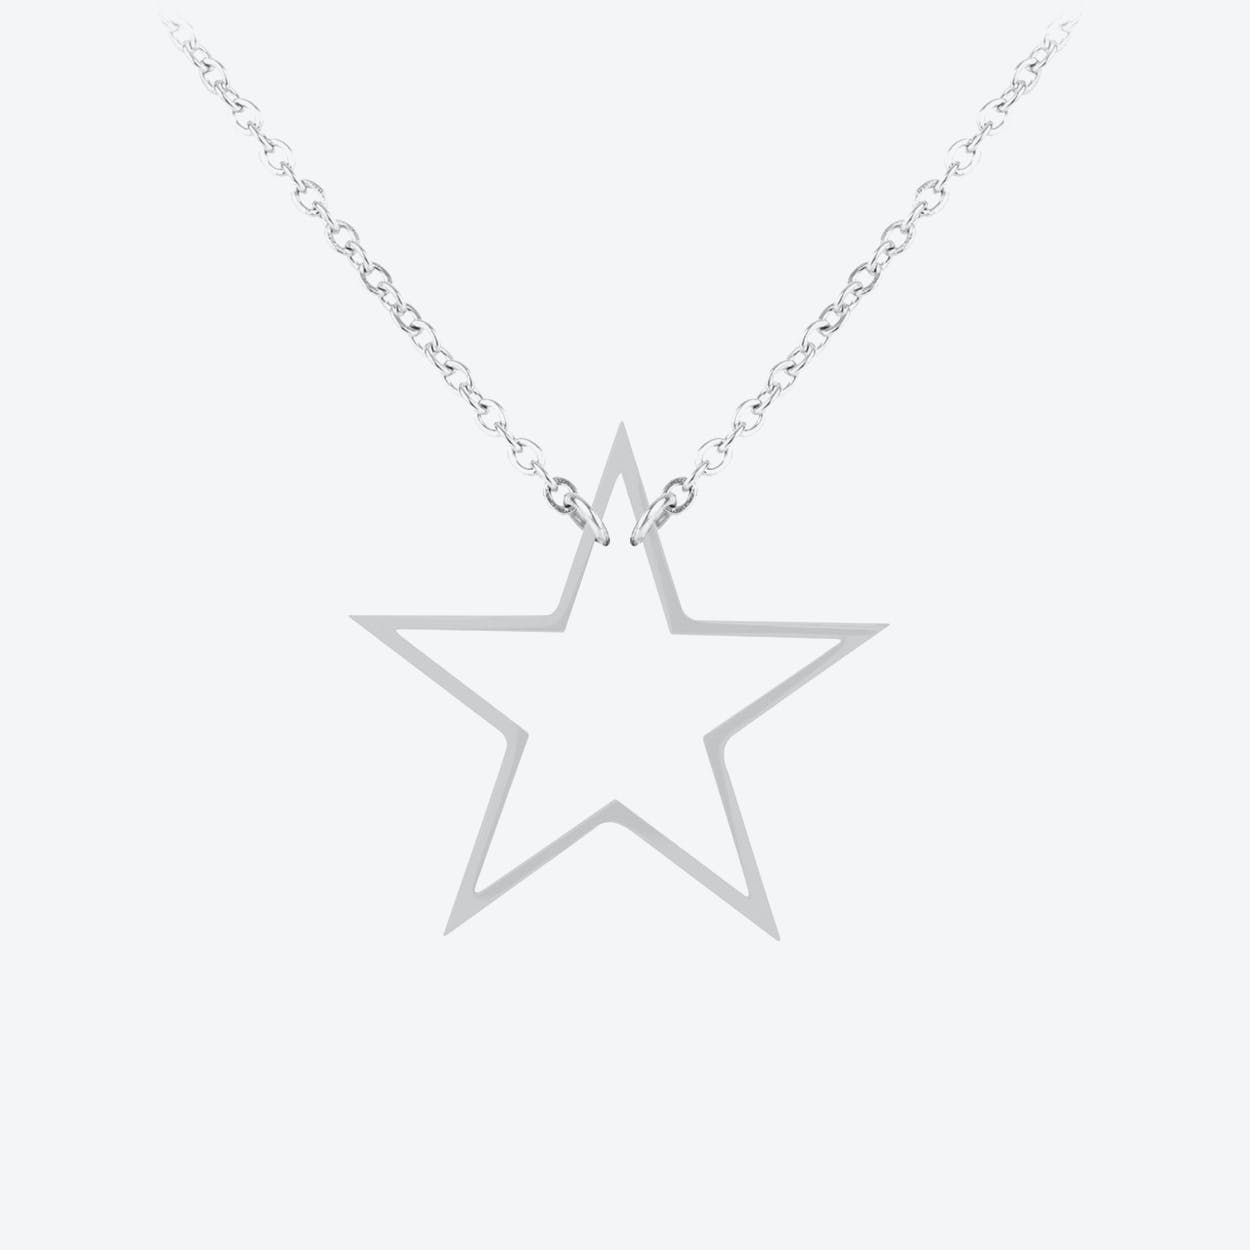 Star Pendant in Polished Stainless Steel